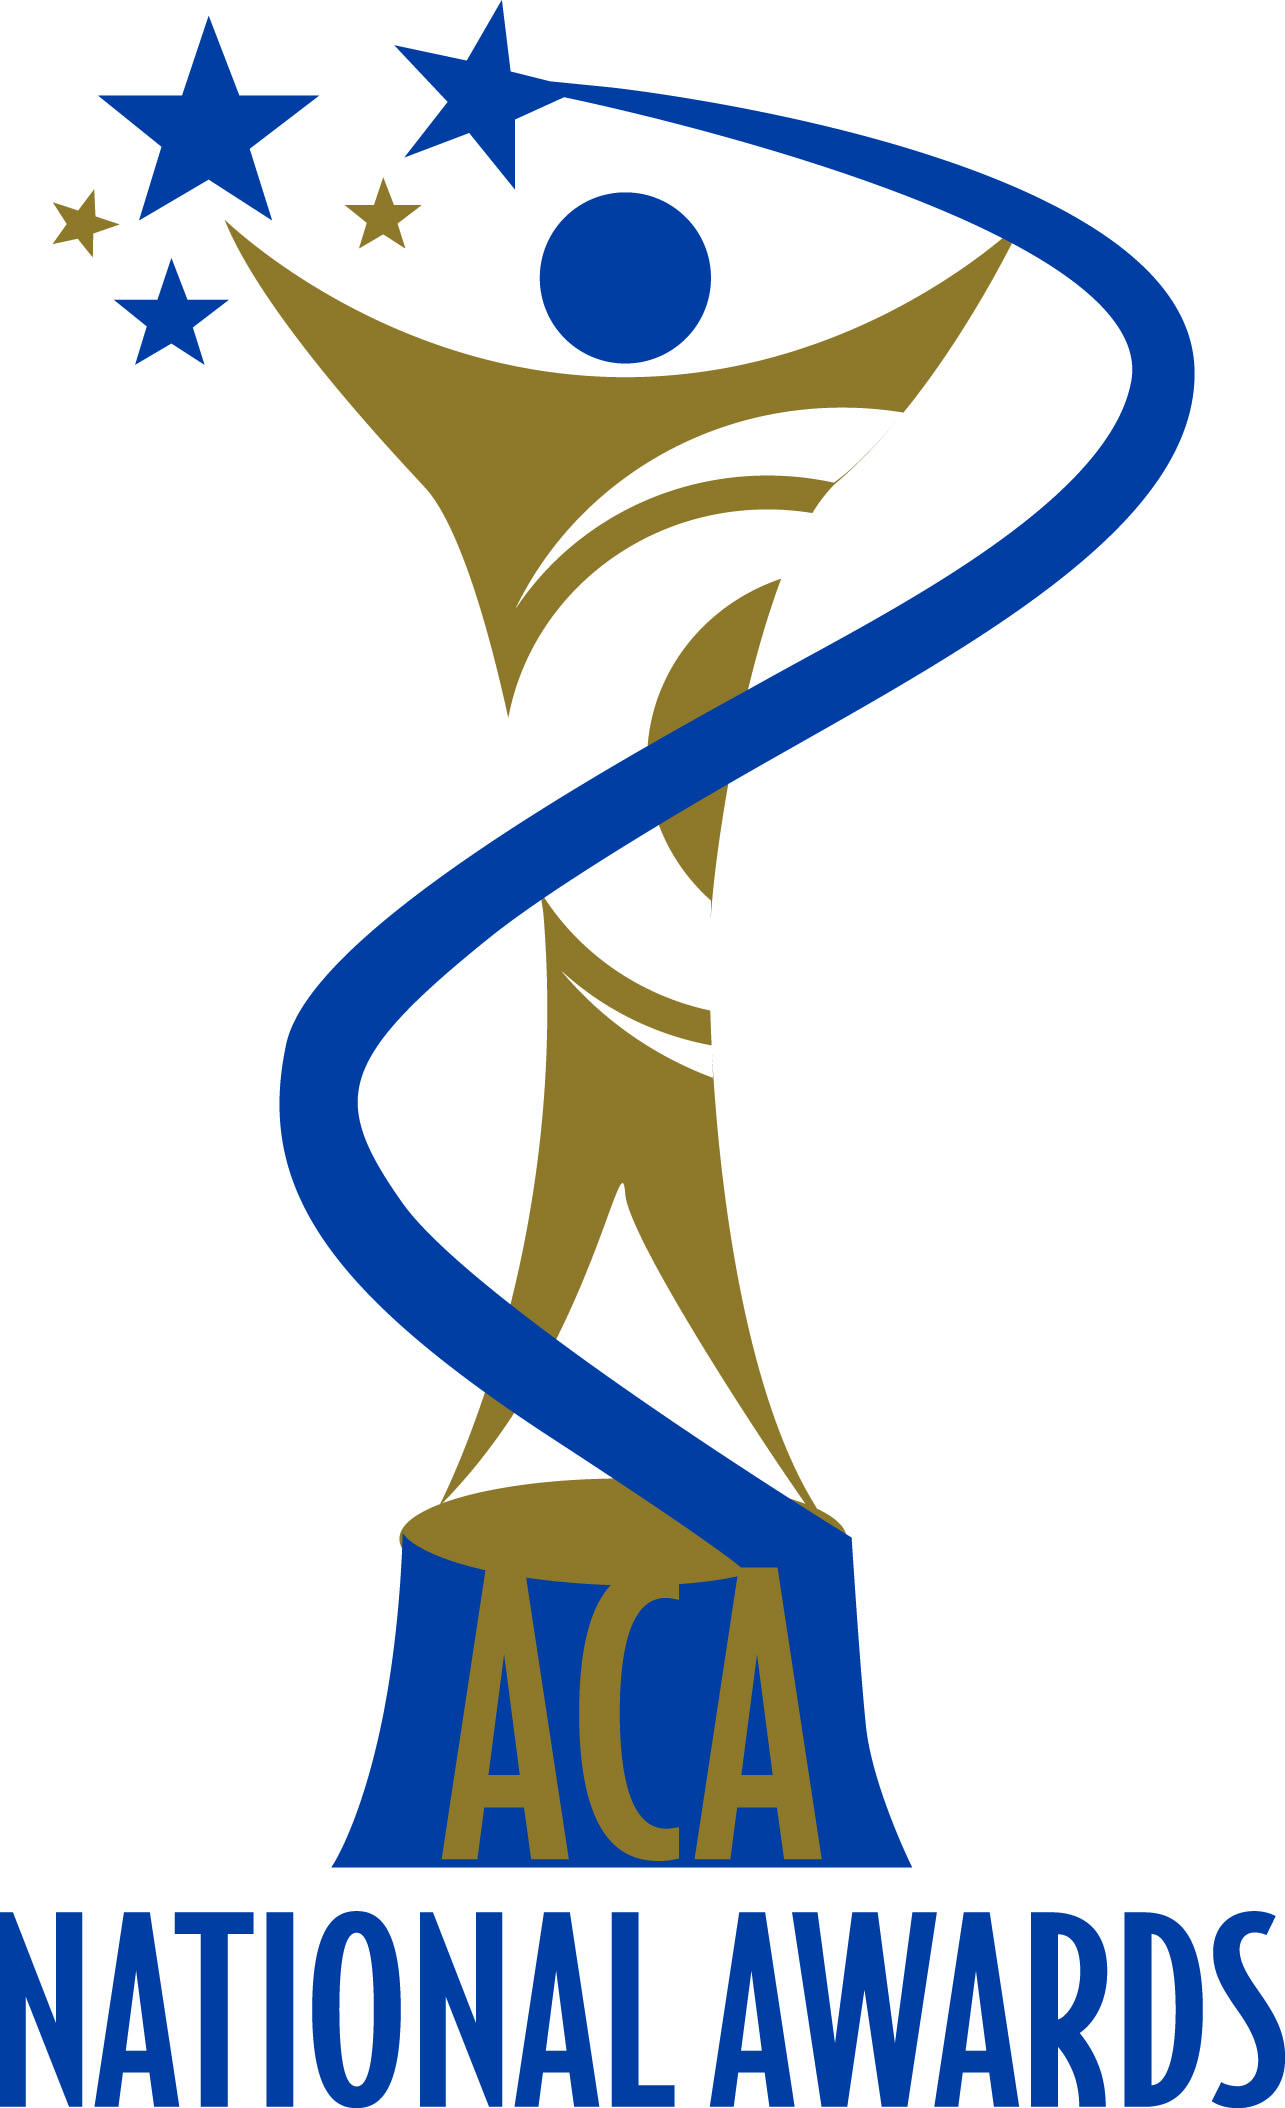 ACA National Awards Logo Final[3]